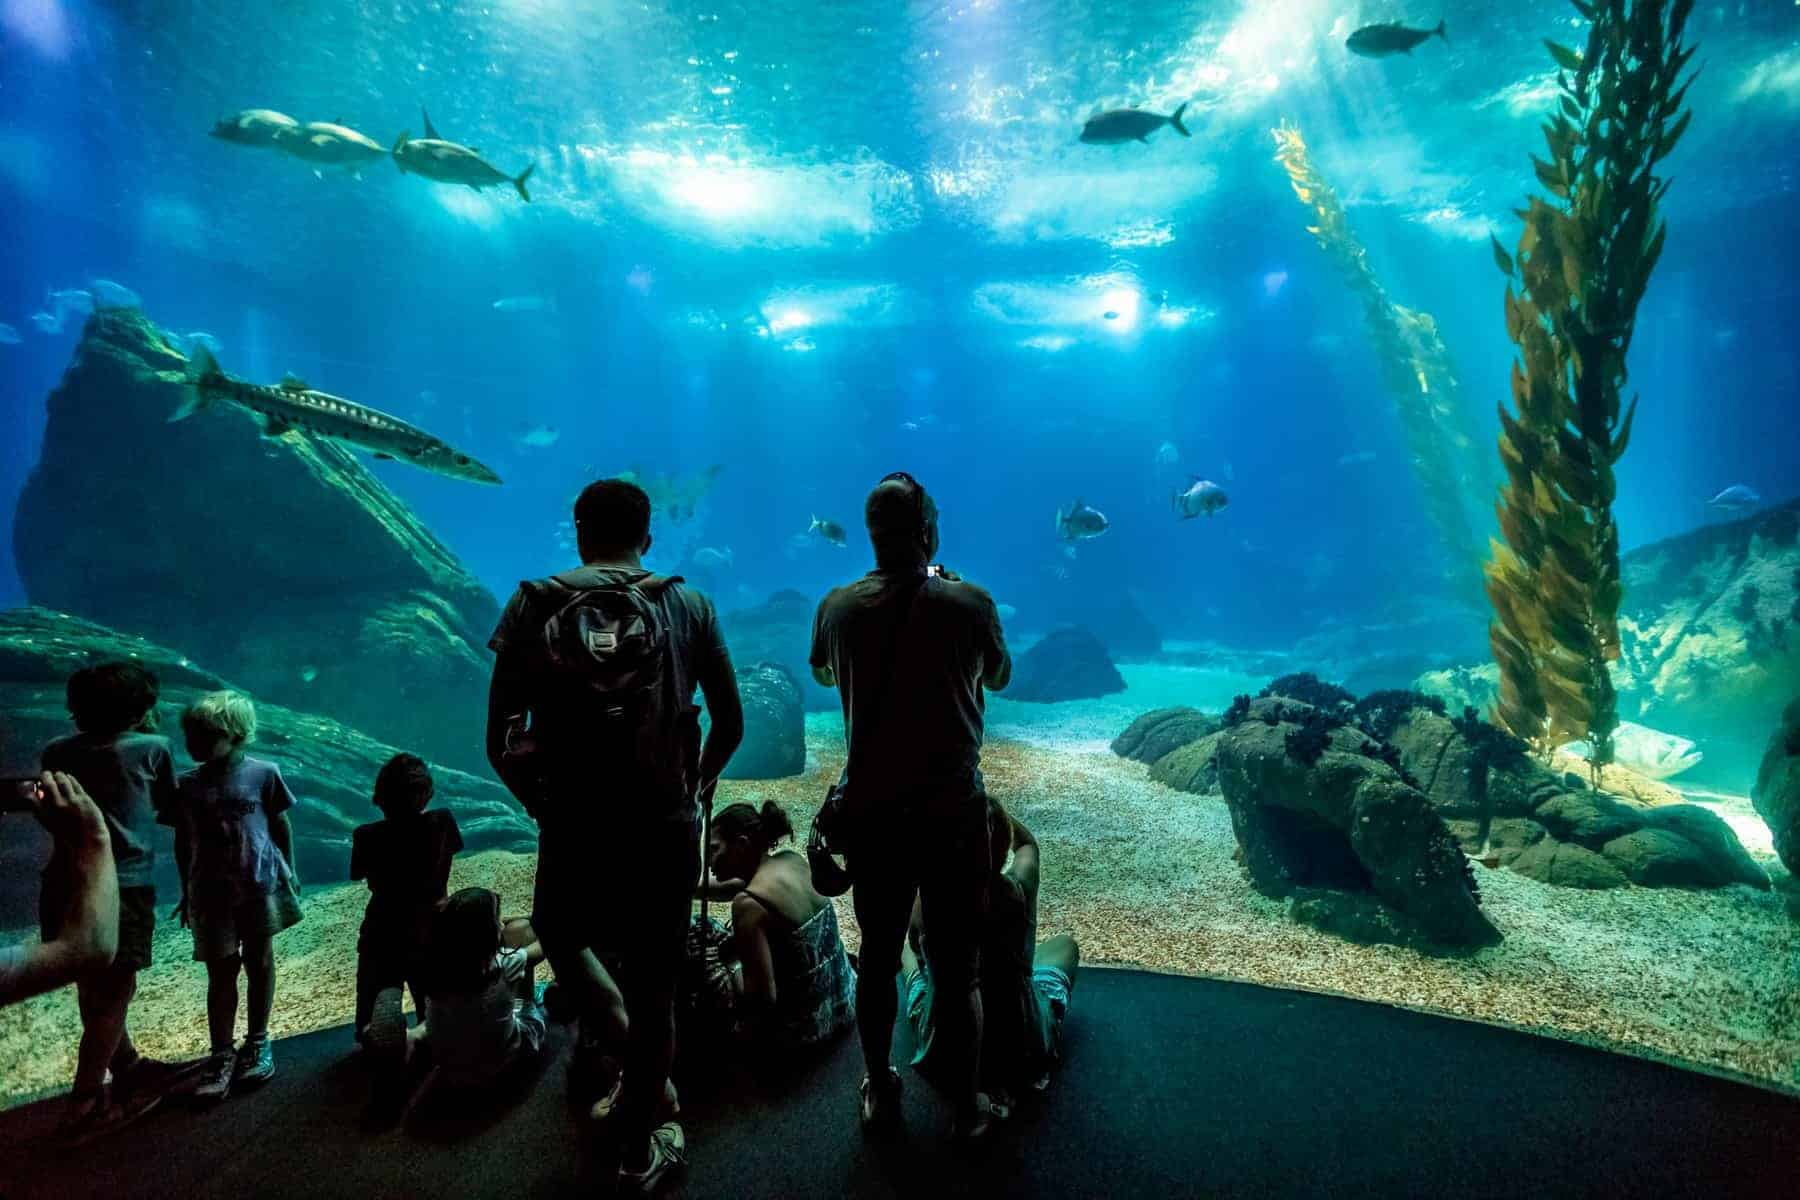 Lisbon, Portugal - August 24, 2017: family watching scenic central tank of Lisbon Oceanarium, in Parque das Nacoes, one of the largest aquarium in the world. Tourism, holidays and leisure concept.